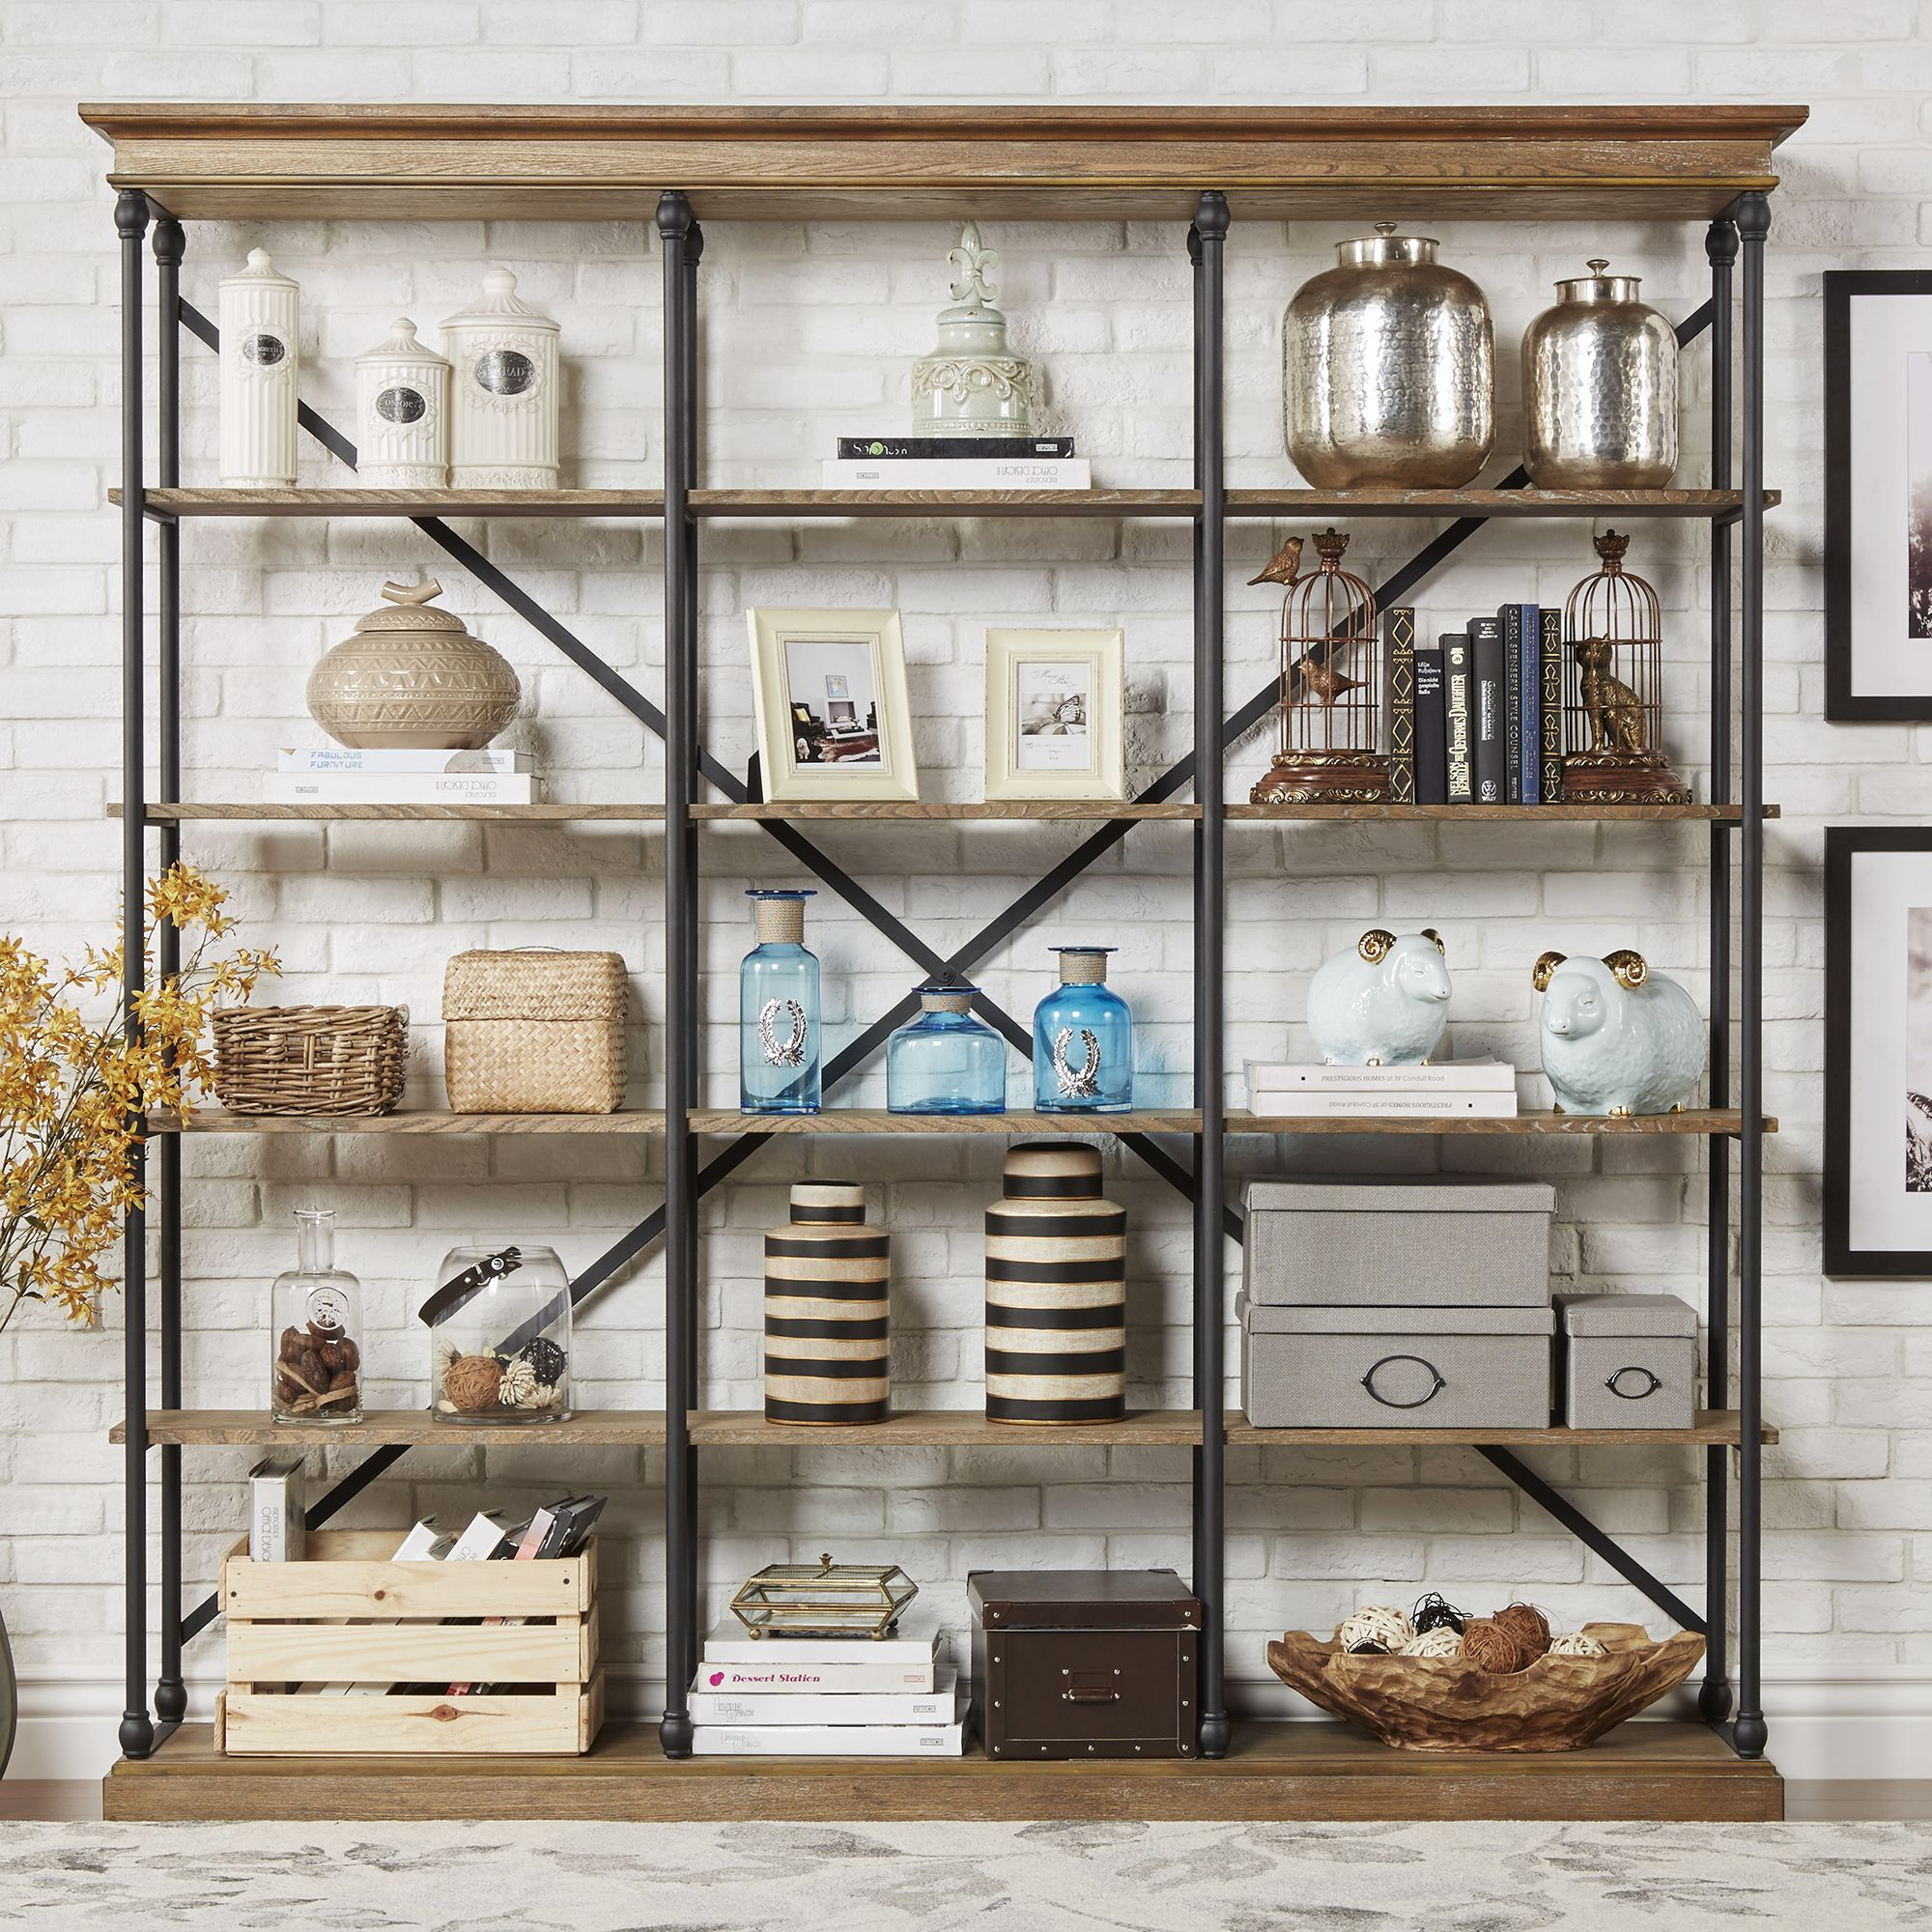 Home Weston Home Rustic Bookshelf Bookcase Decor